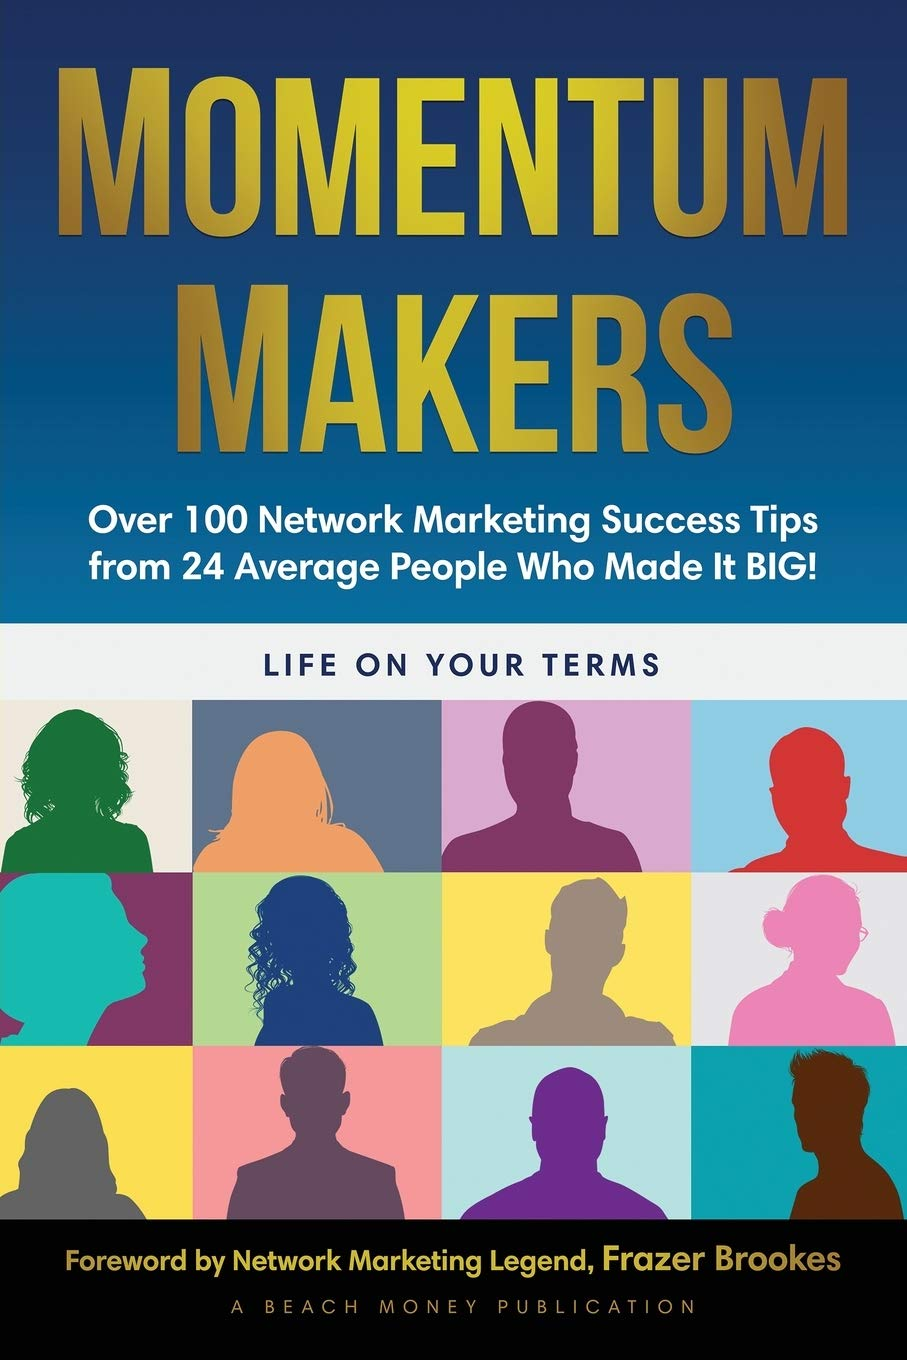 Momentum Makers: Over 100 Network Marketing Succcess Tips From 24 Average People Who Made It BIG!